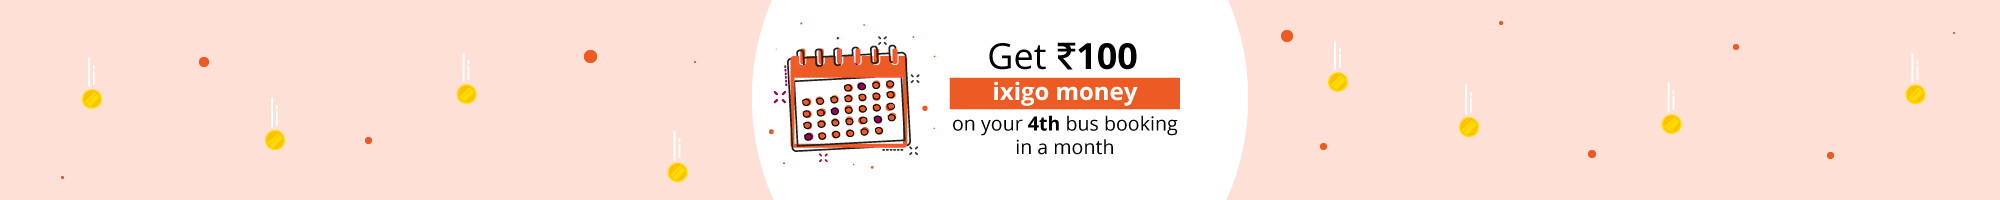 ixigo Offers, Coupons, Latest ixigo Offers in June 2019 : ixigo com